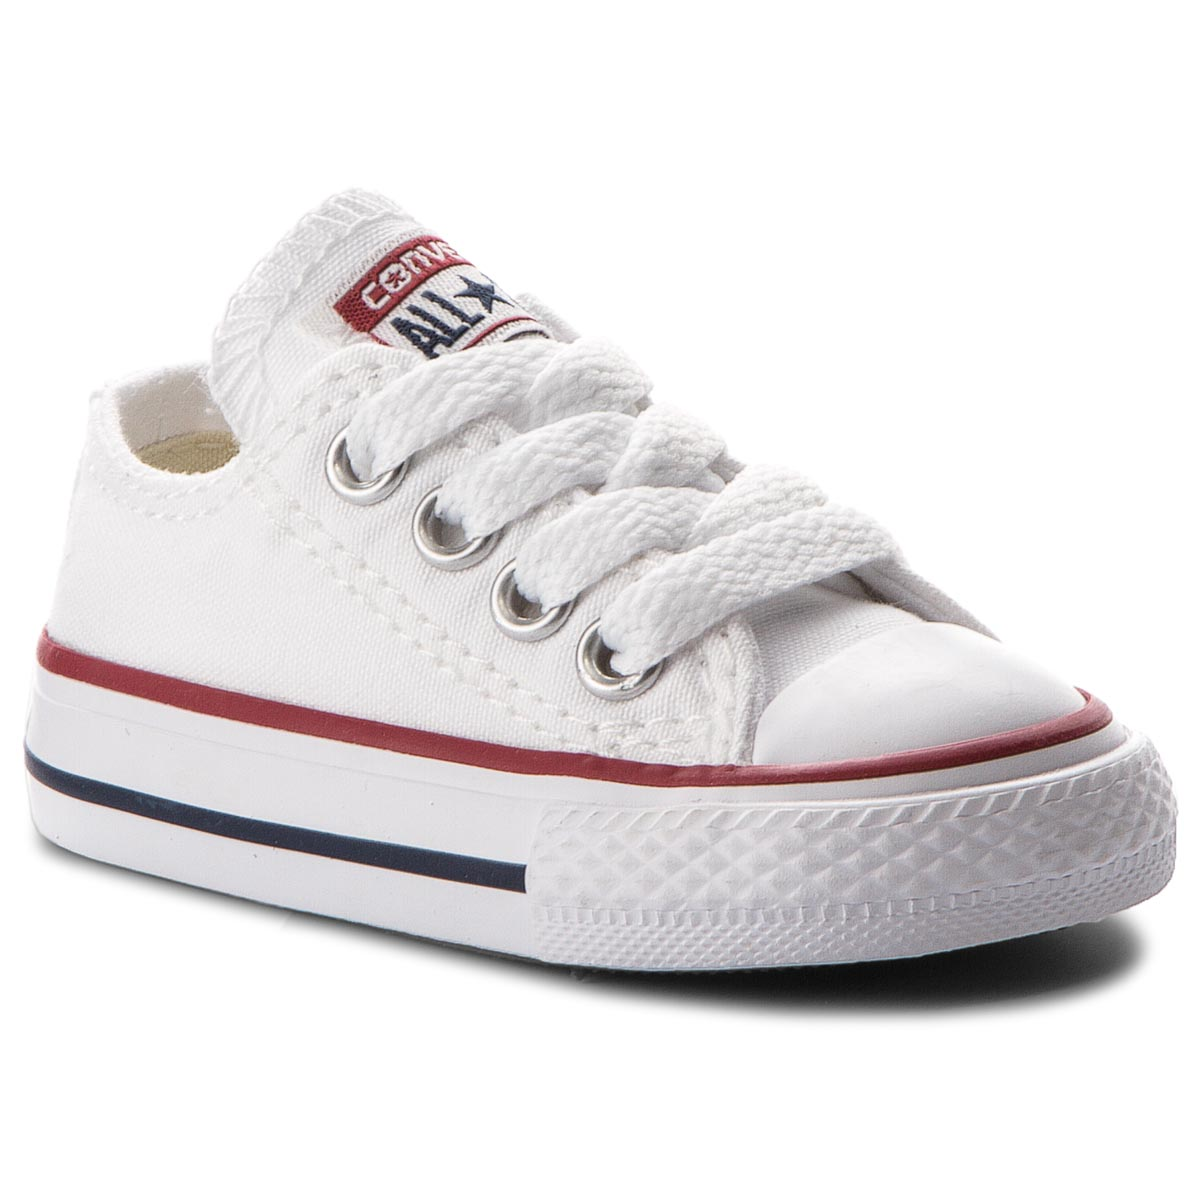 Trampki CONVERSE – C/T A/S OX 7J256C Optical White